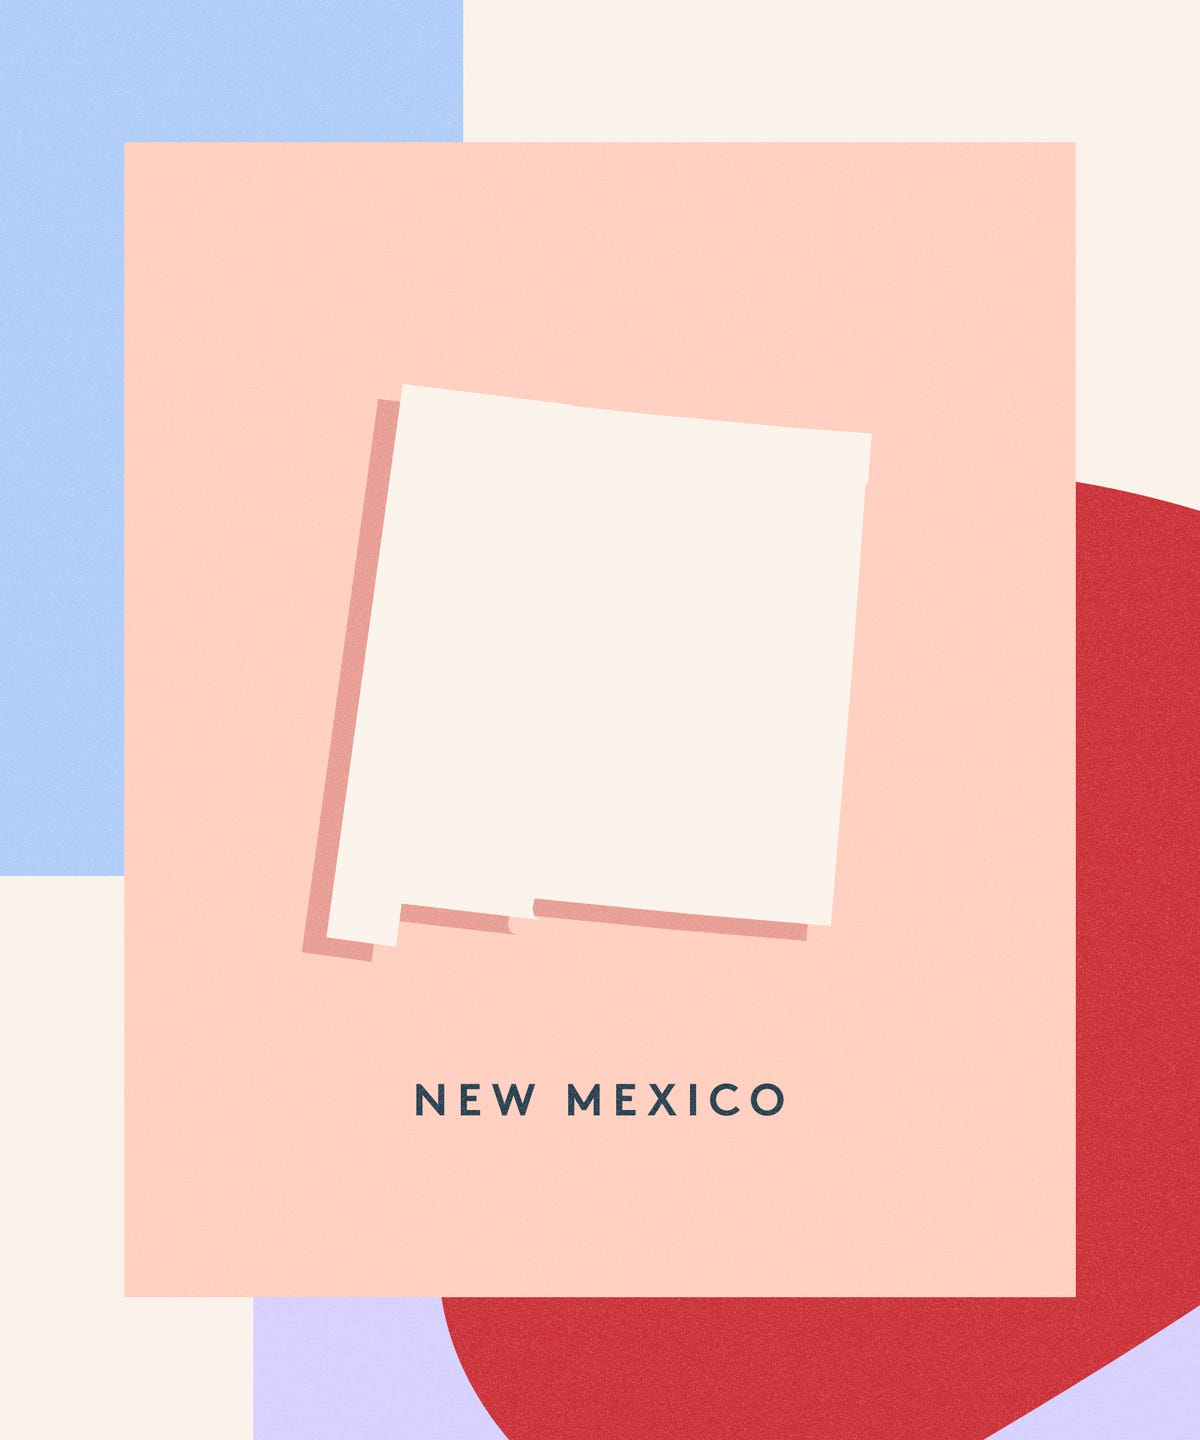 dating laws in new mexico